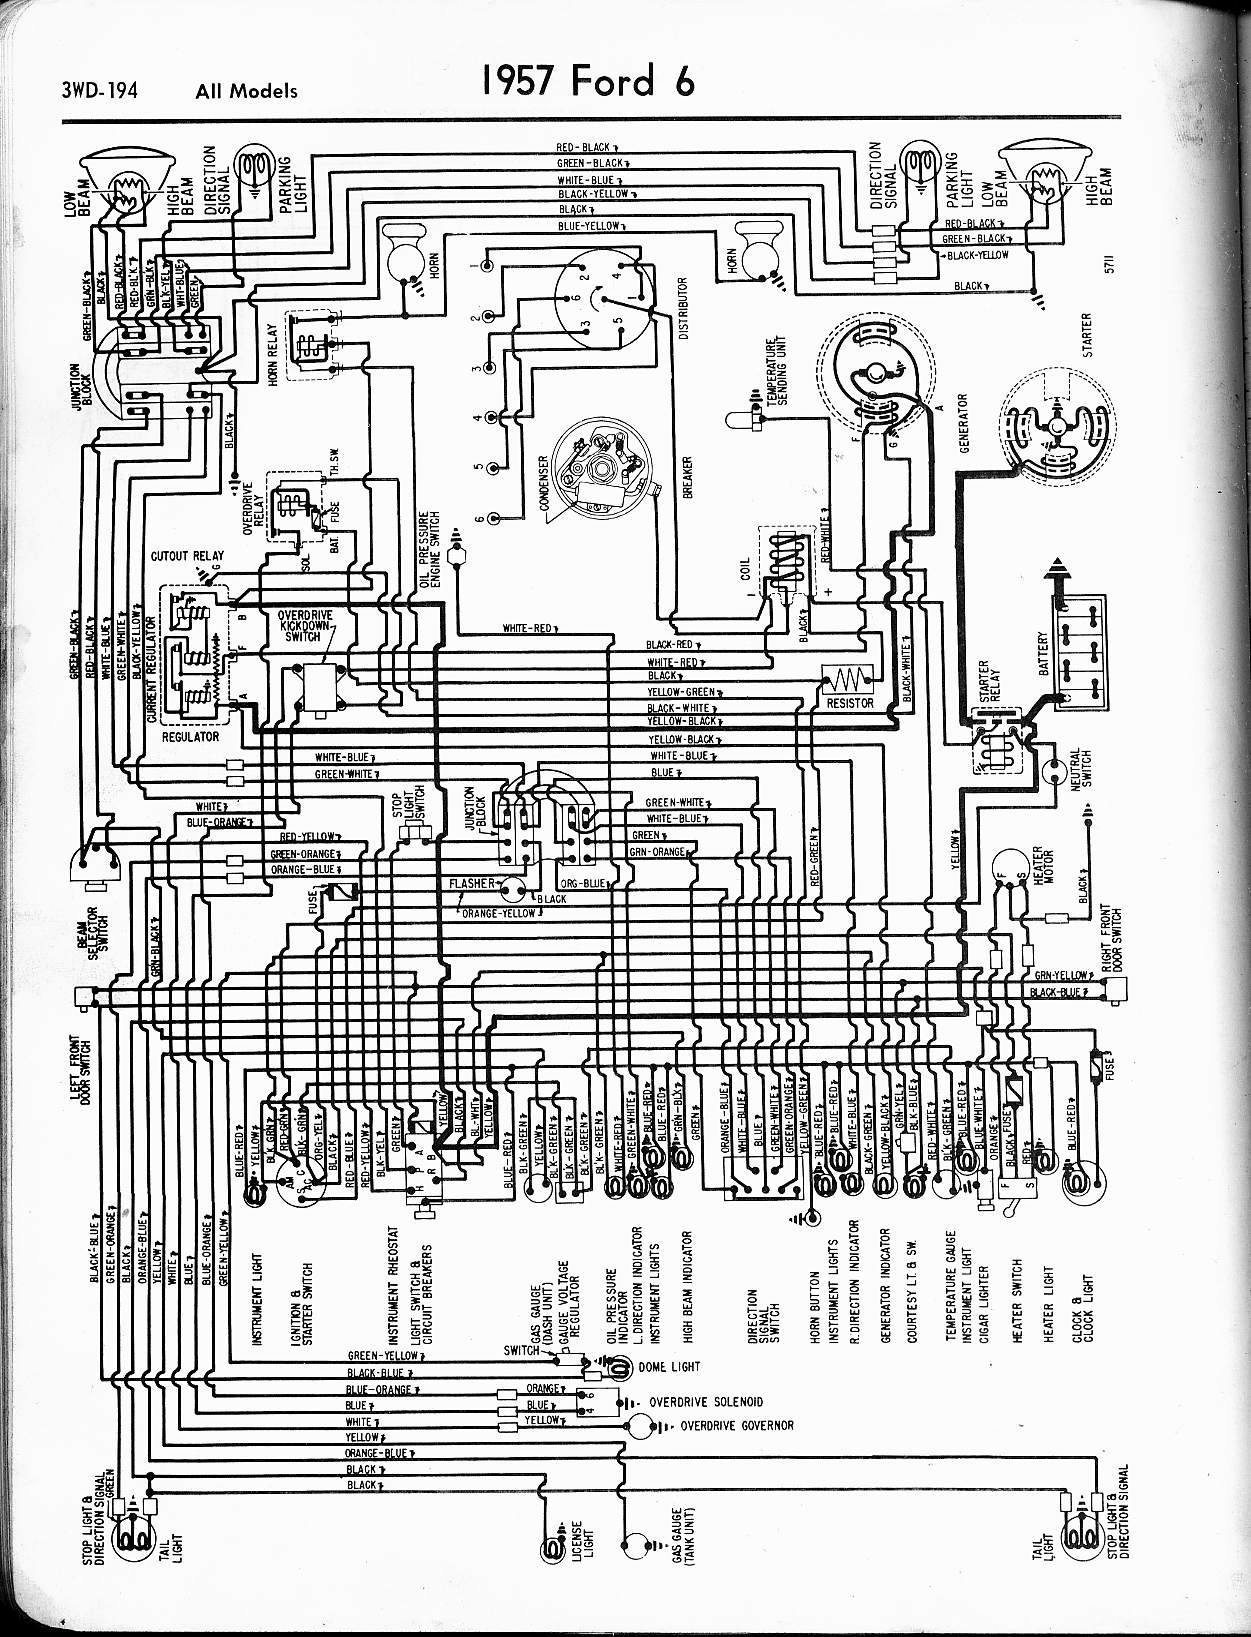 57_ford_wiring ford diagrams ford ltl 9000 wiring diagram at gsmportal.co